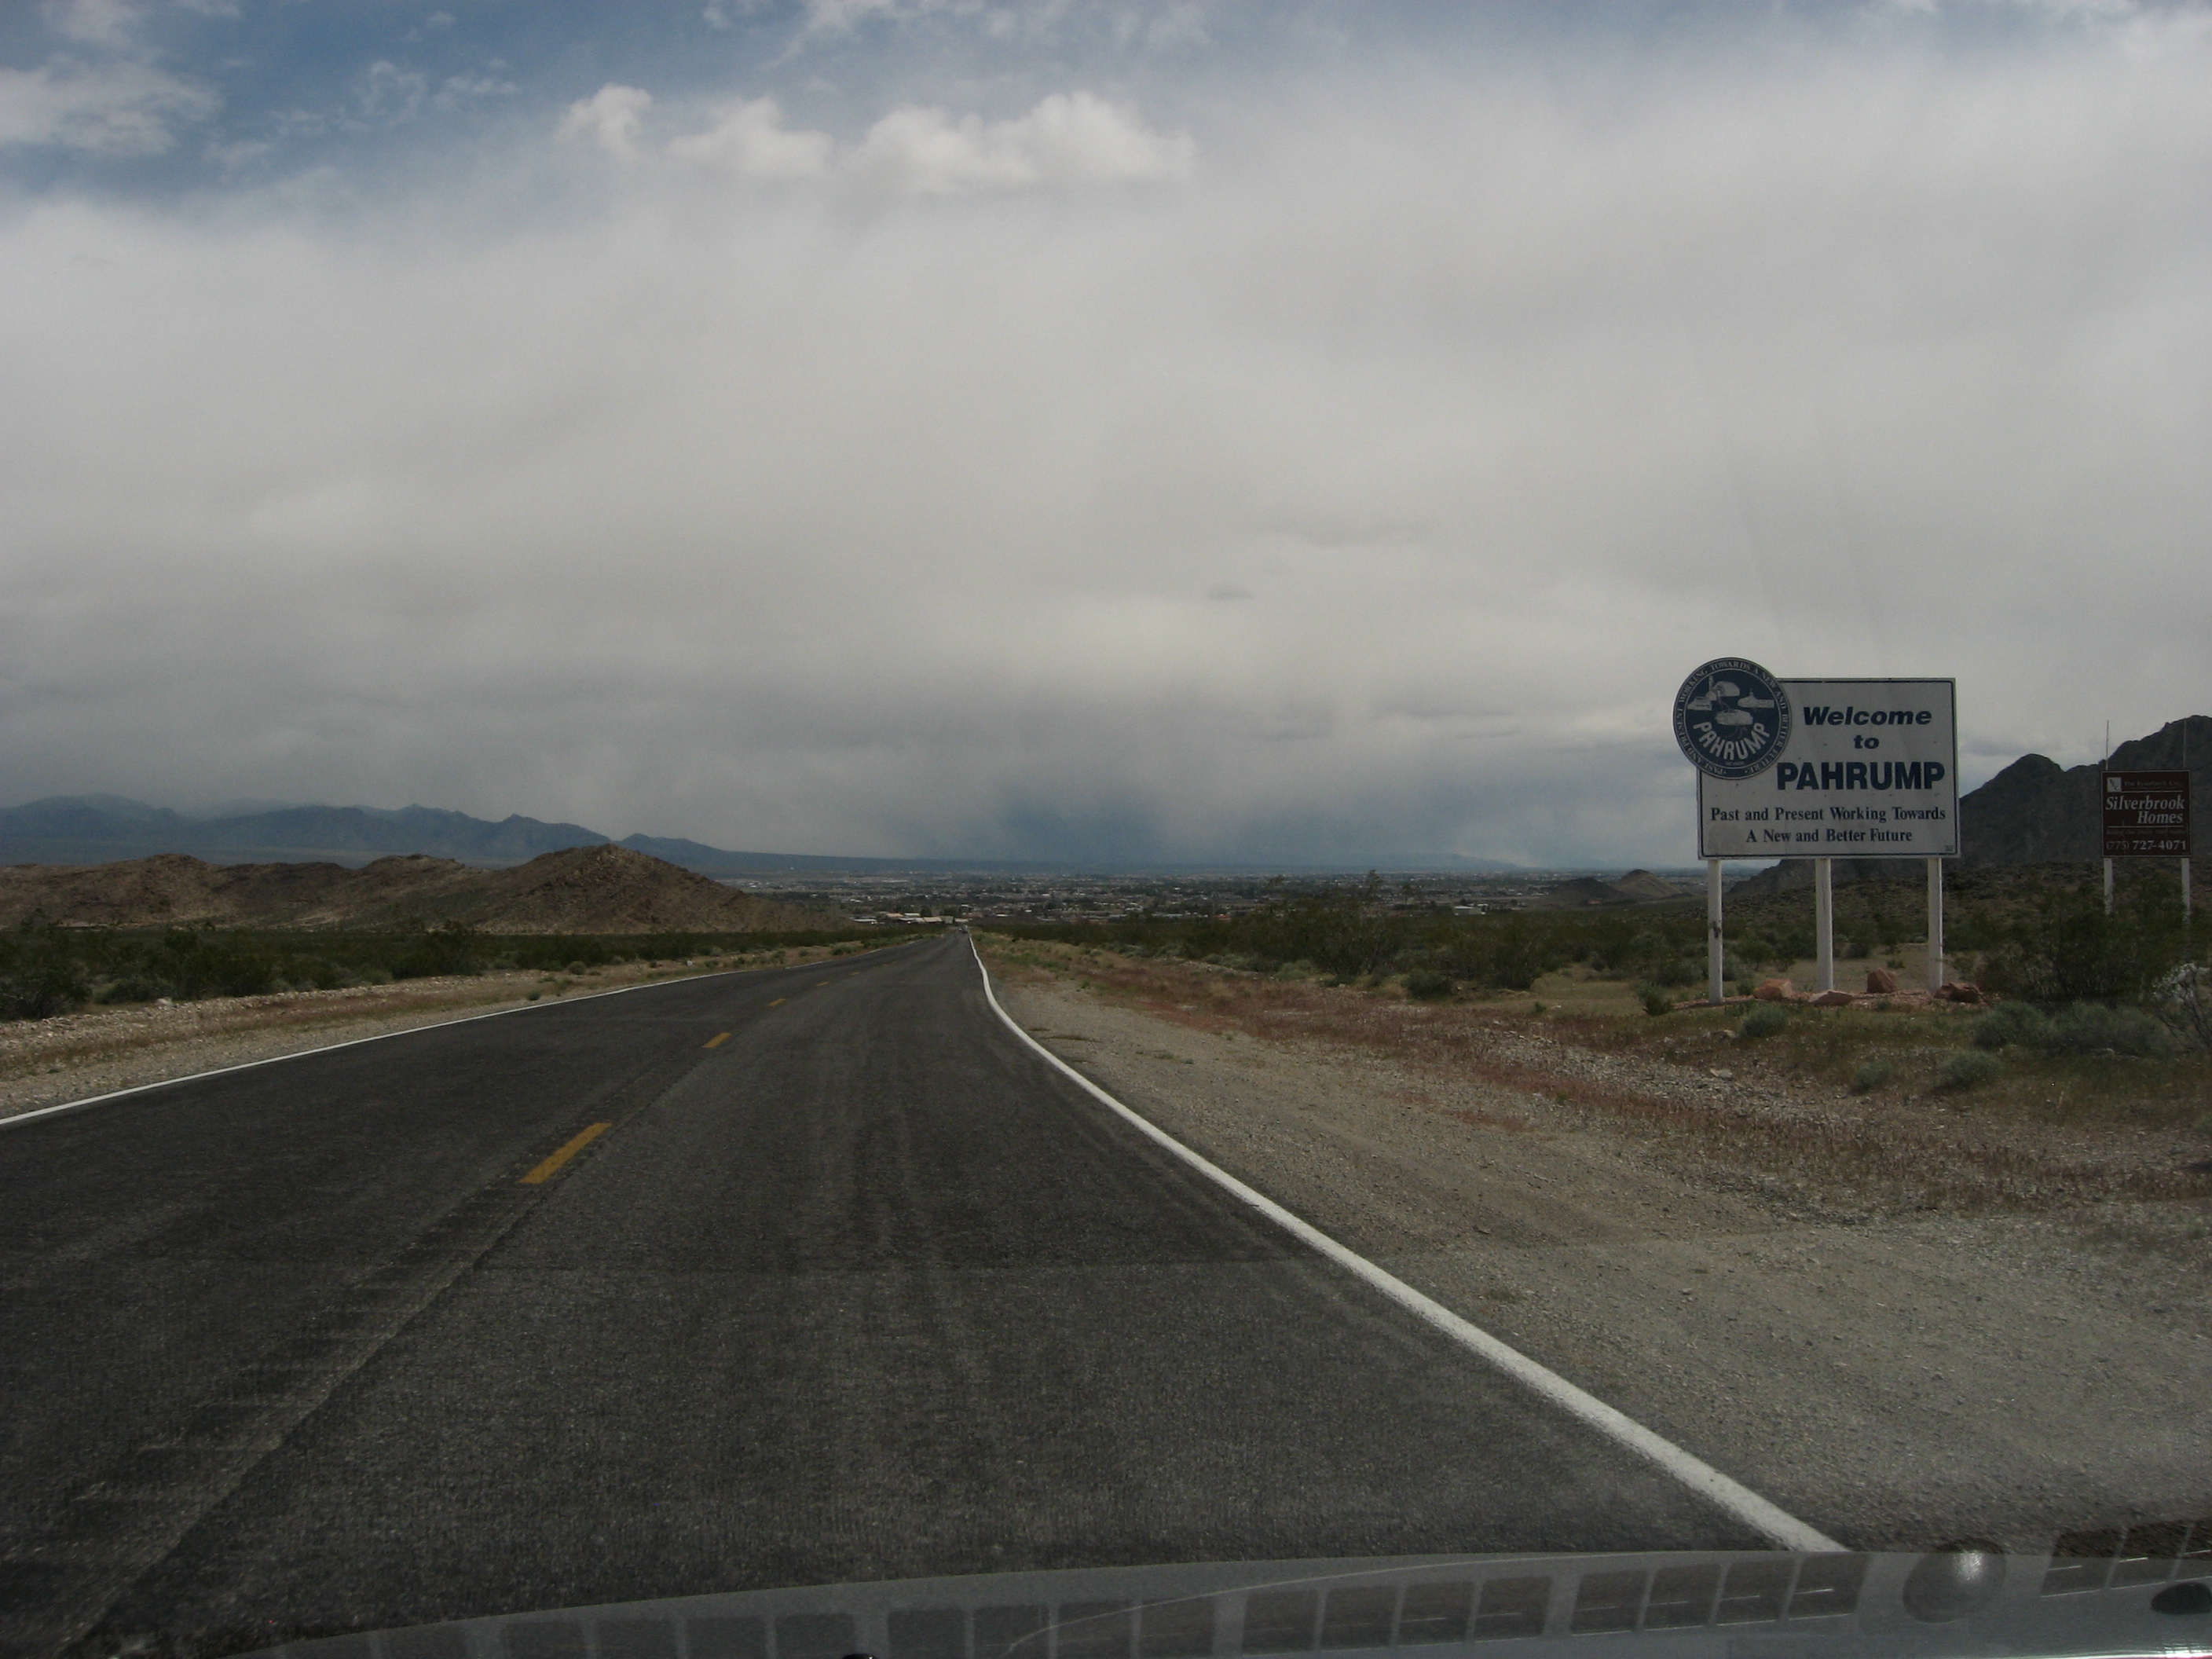 file entering pahrump  nevada  5628926483  jpg